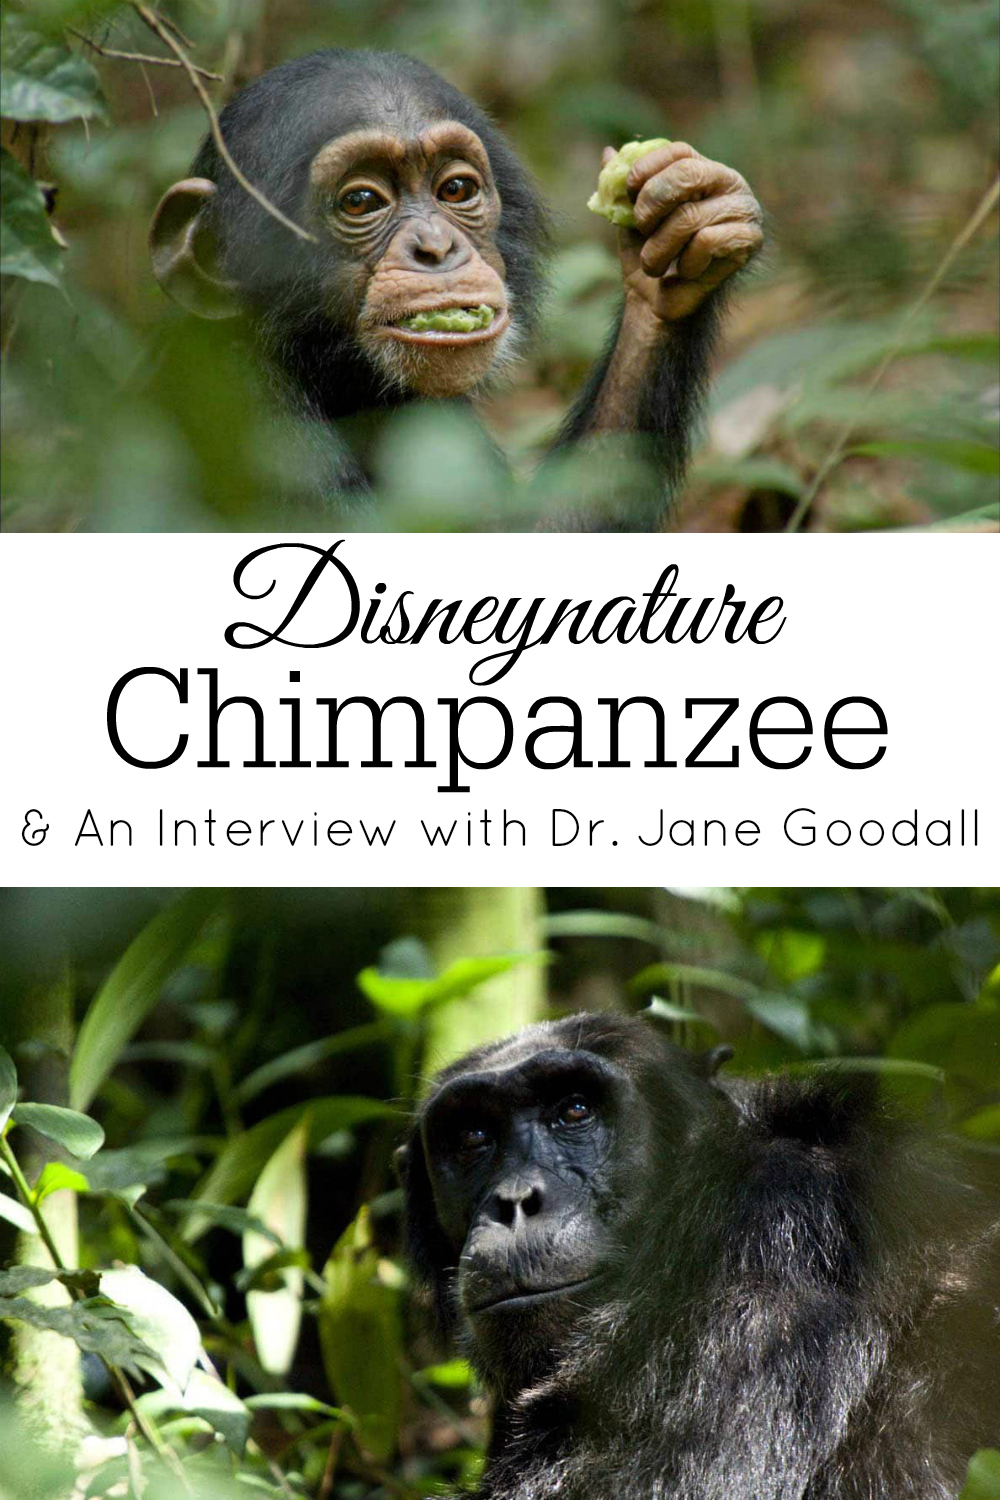 collage of chimpanzees from Disneynature's film